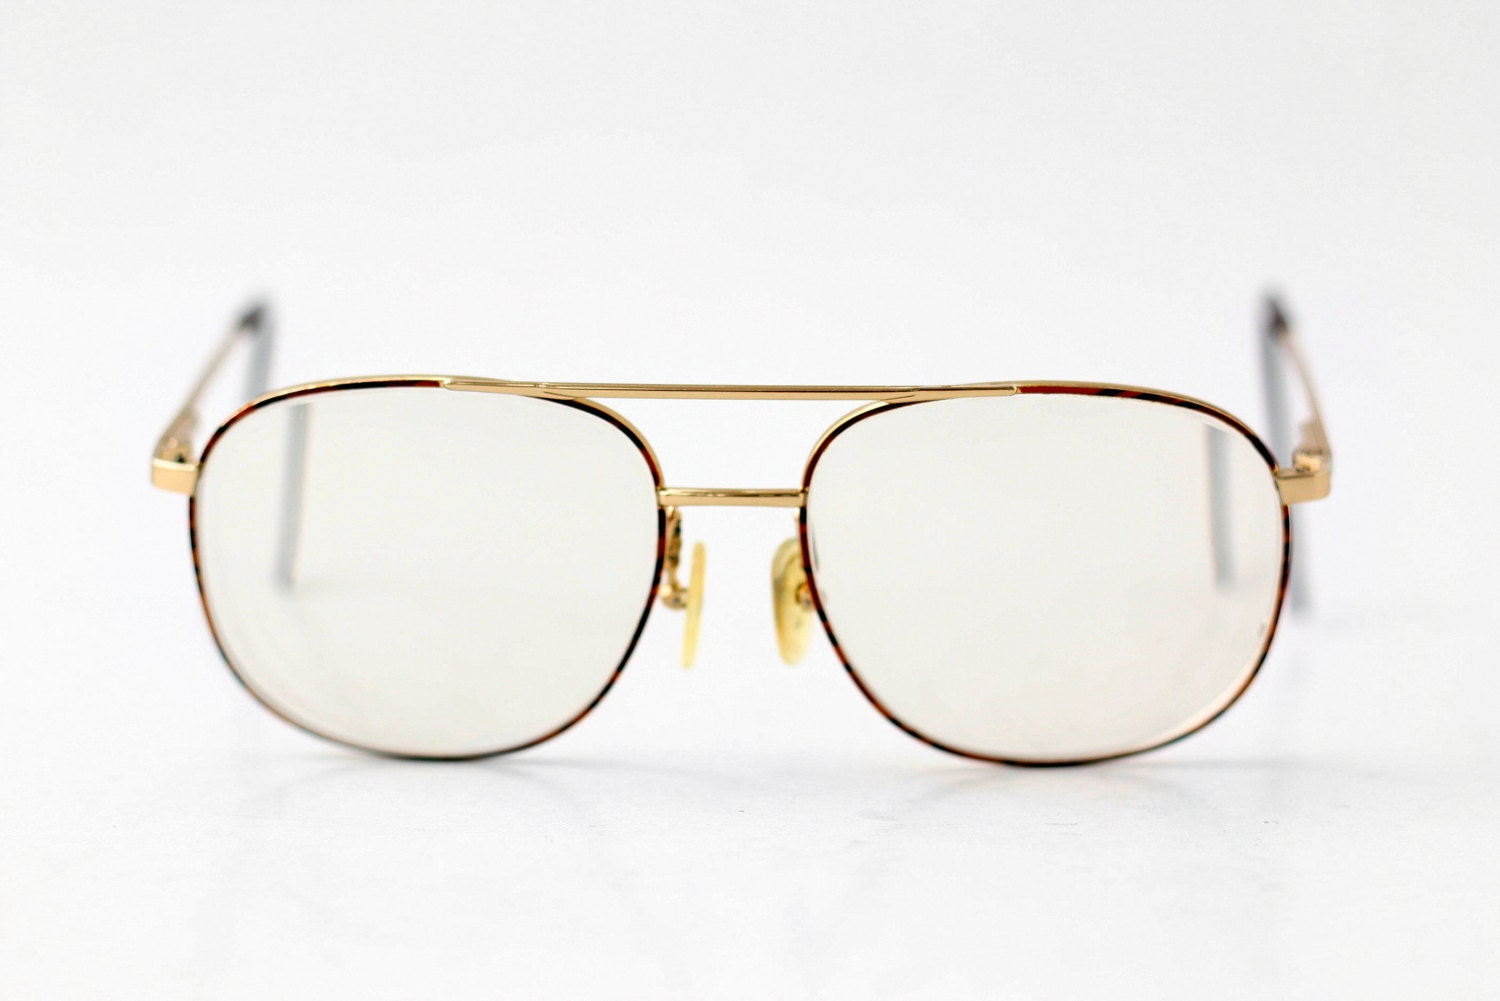 Gold Metal Glasses Frames : Vintage Tortoise Gold Metal Eyeglasses / Hipster Unisex Mens